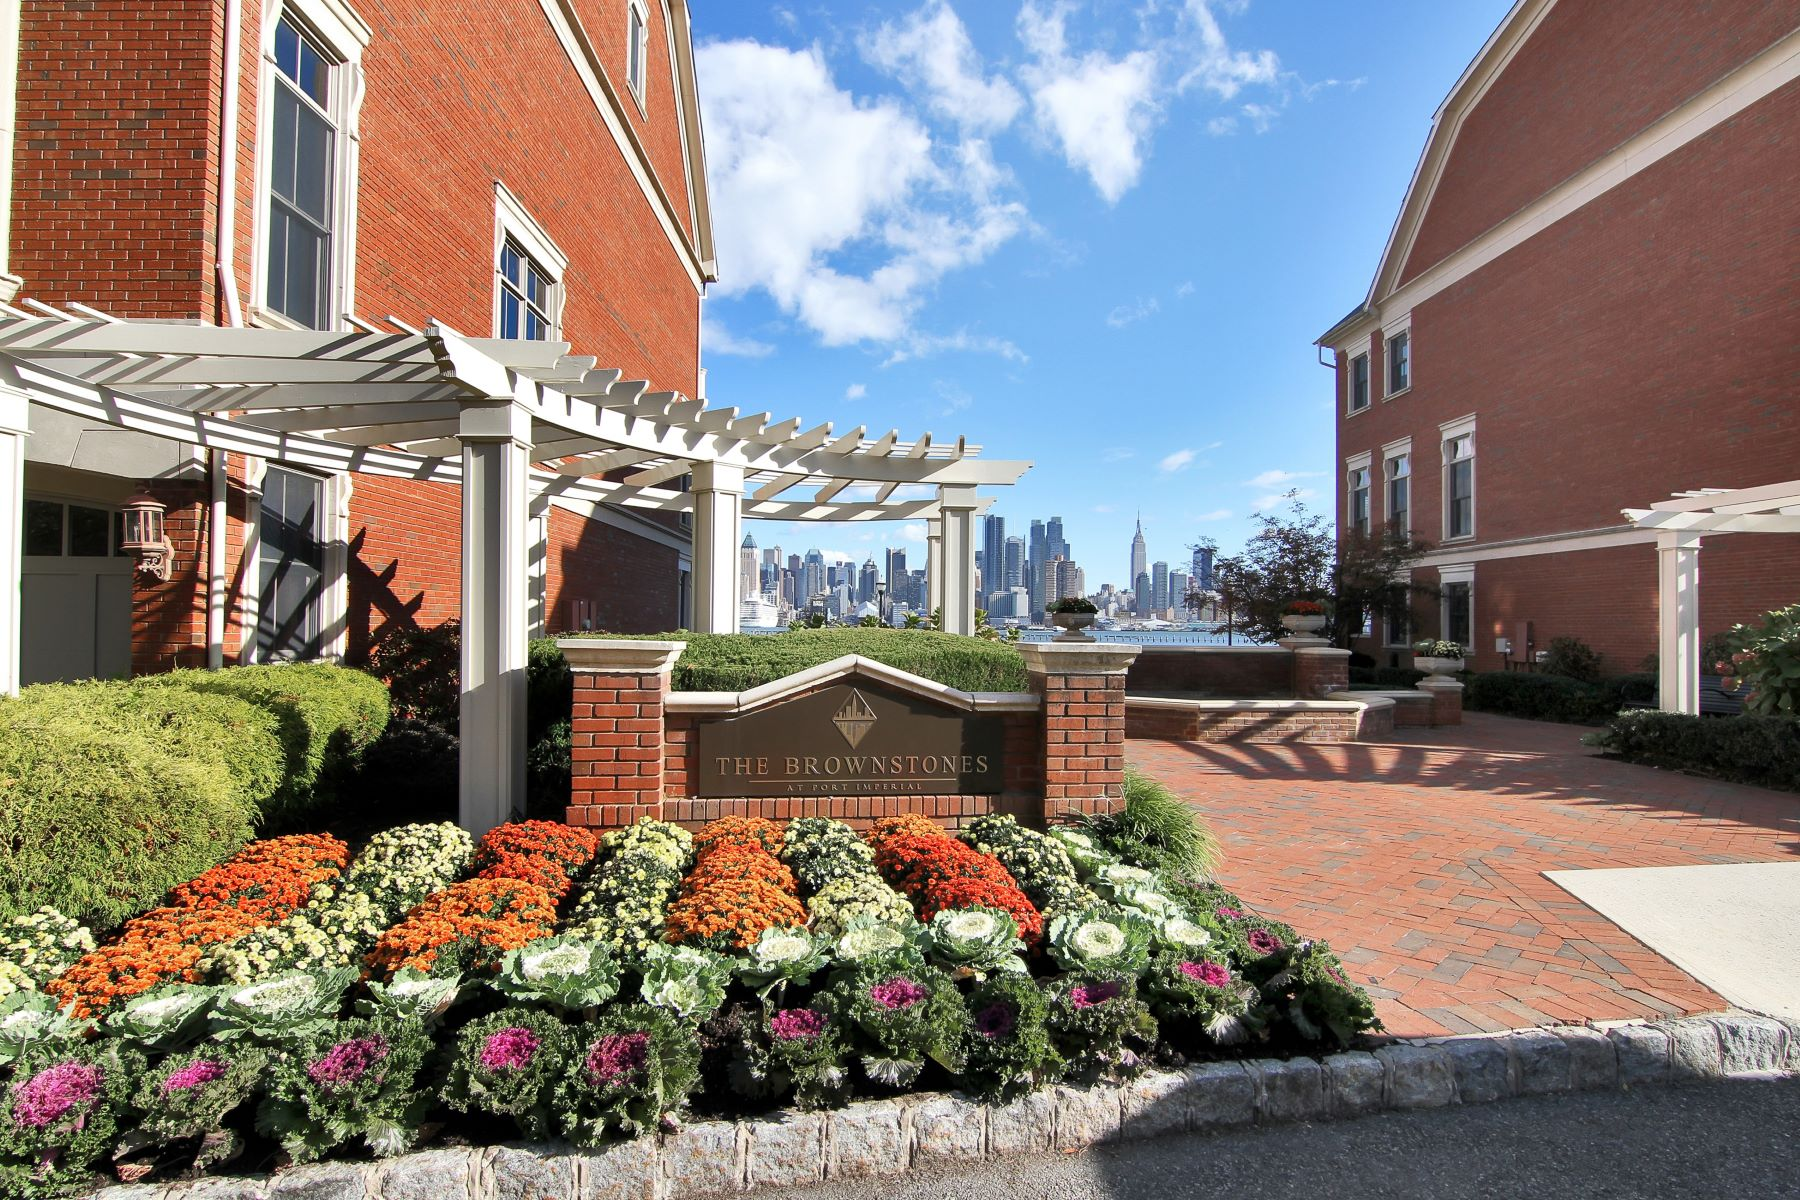 Townhouse for Sale at BrownStone at Port Imperial! 31 Regency Place #31 Weehawken, New Jersey 07086 United States